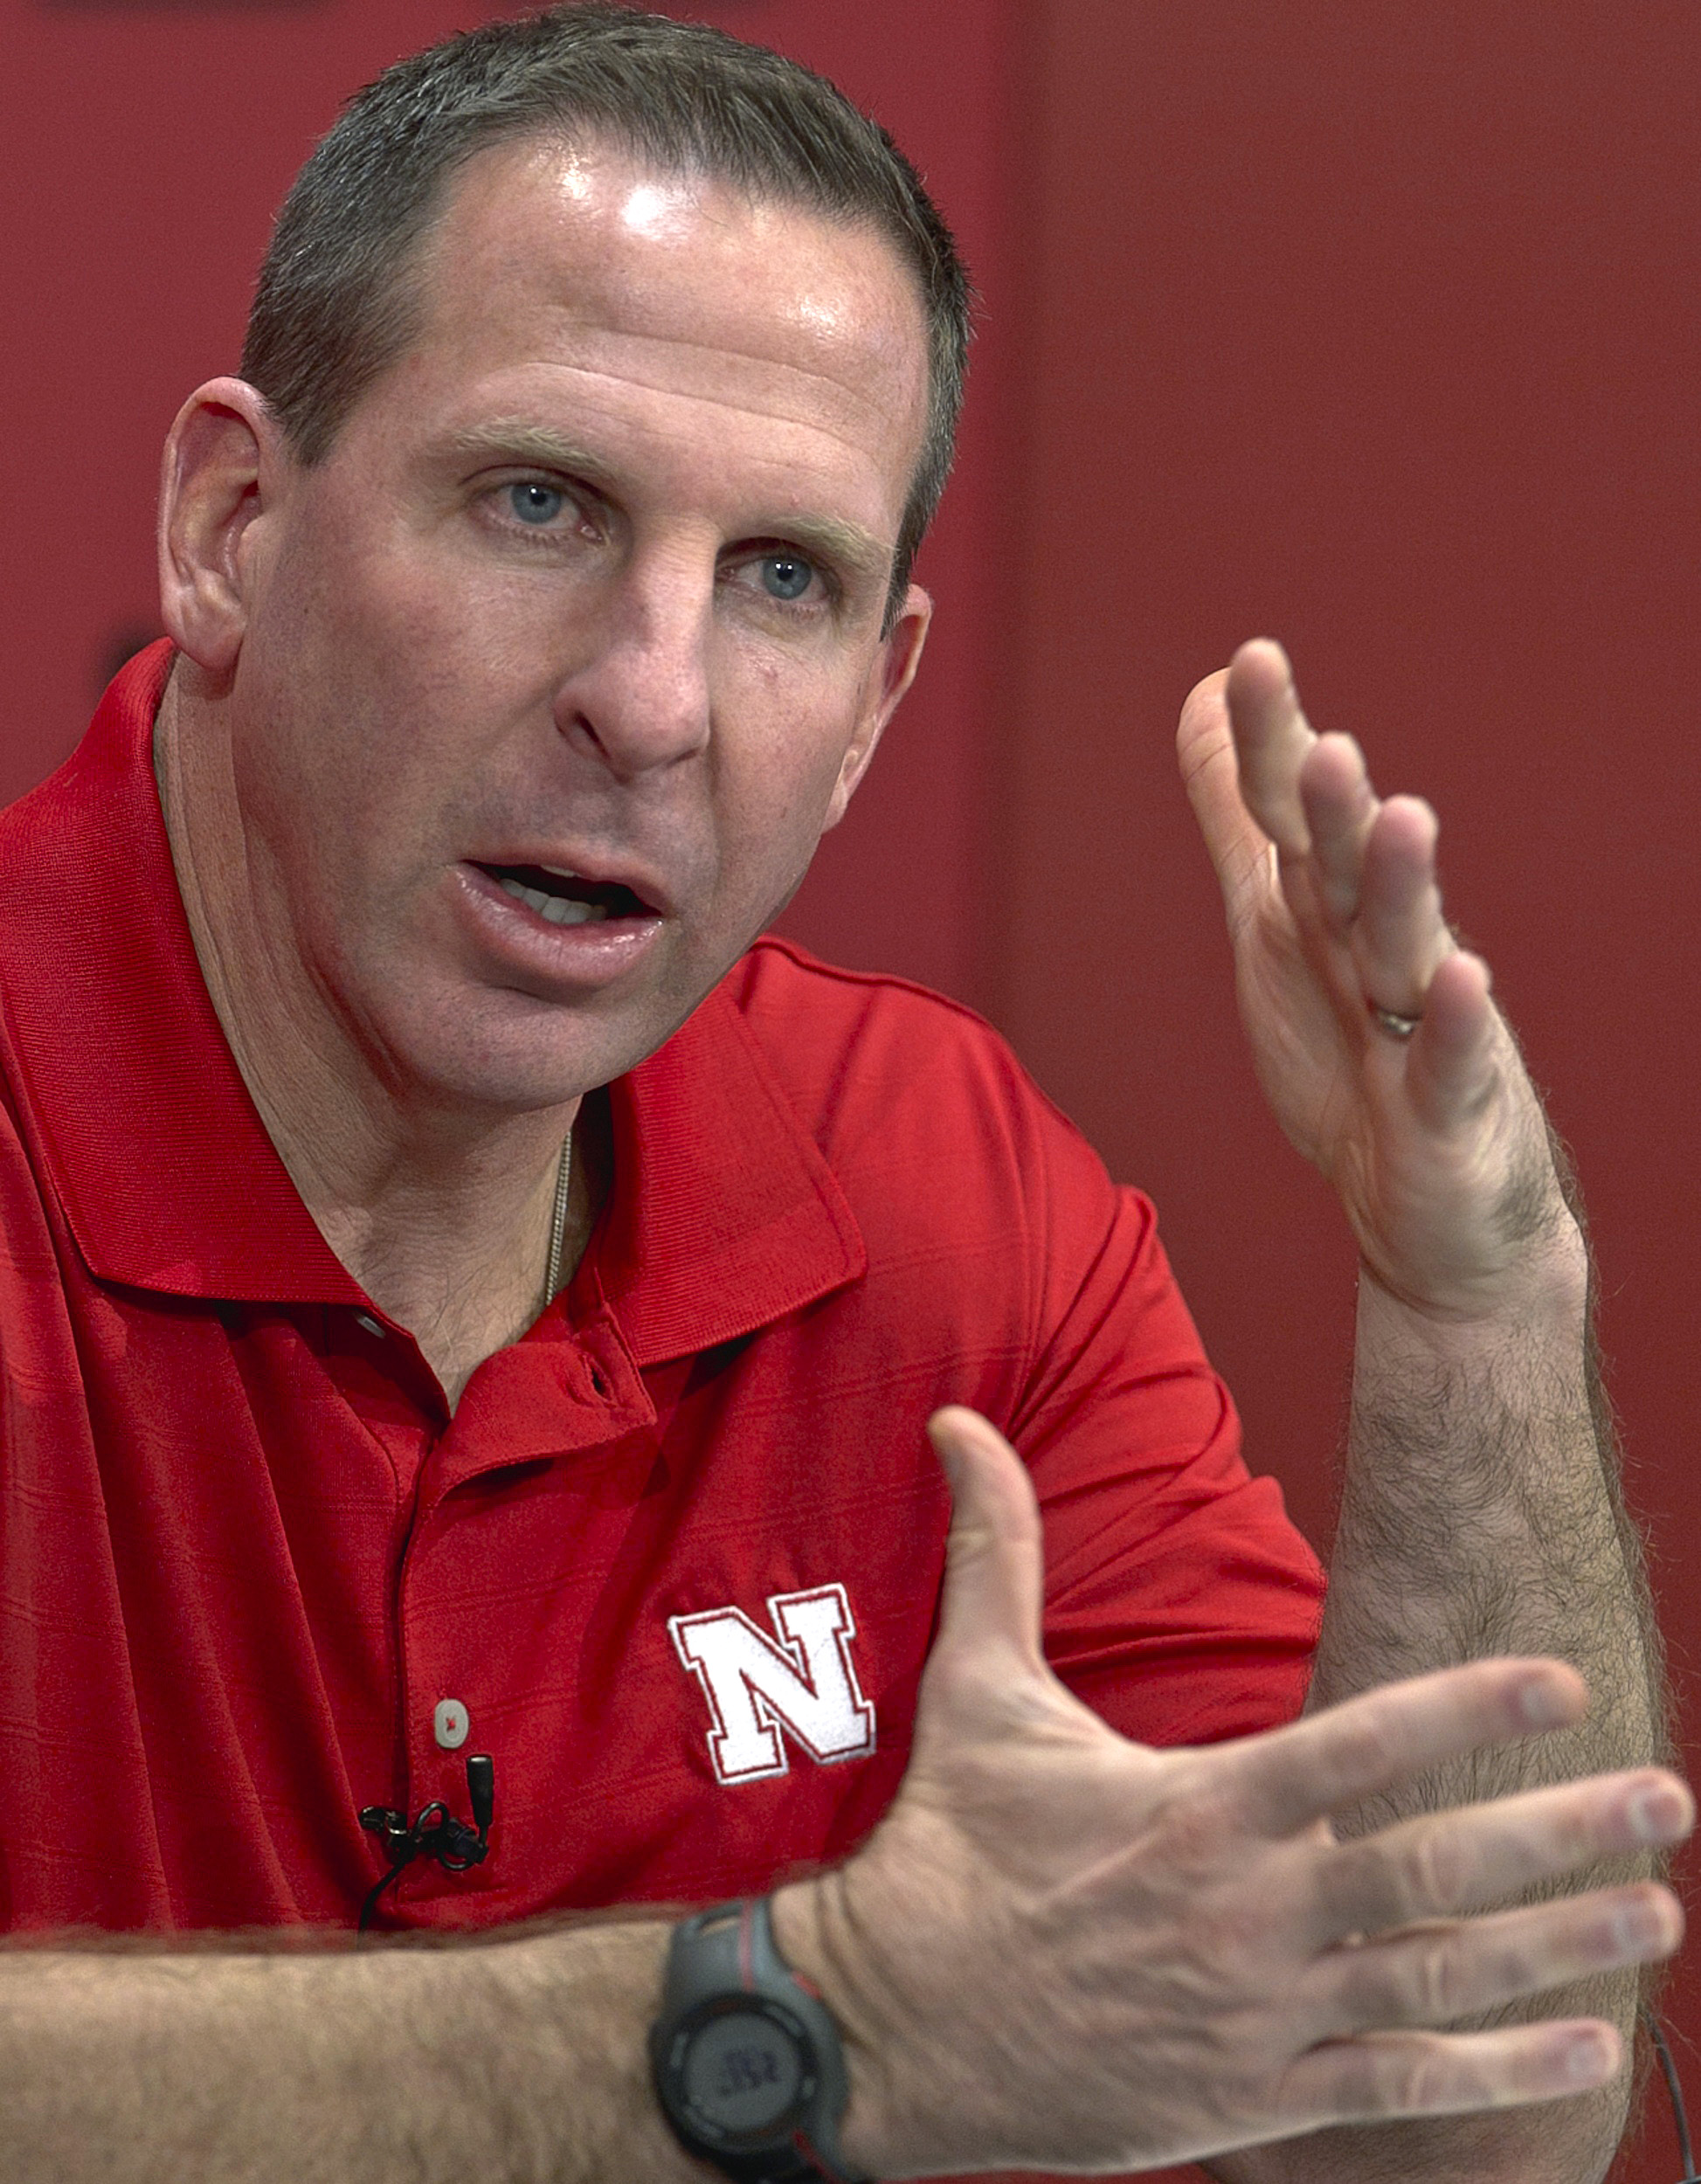 Nebraska coach Bo Pelini won't recruit Penn State players. Well, probably won't, anyway. (AP)